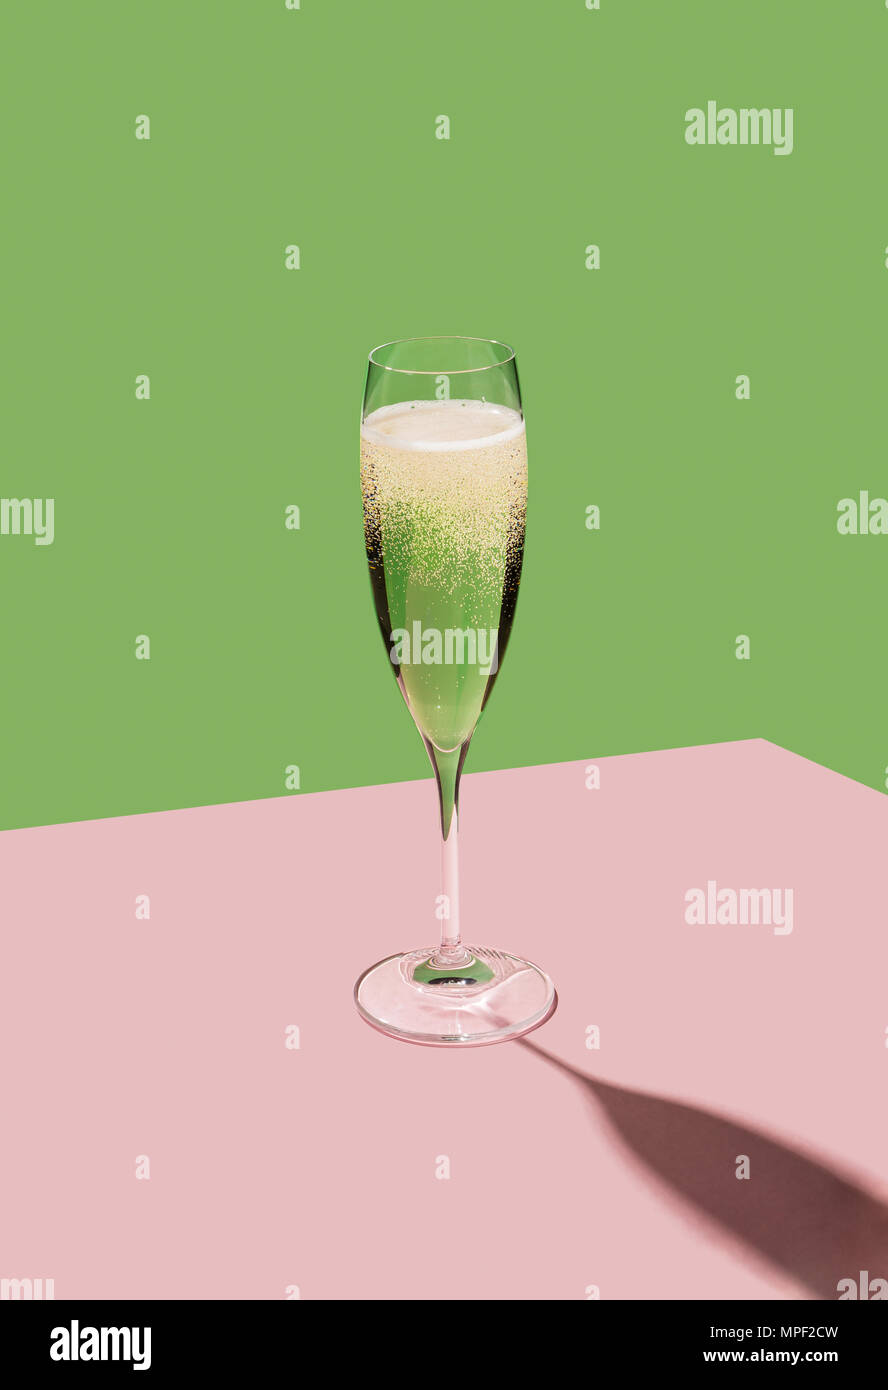 A flute filled with Prosecco, an italian white sparkling wine cultivated in Valdobbiadene. Pop colorful background Stock Photo